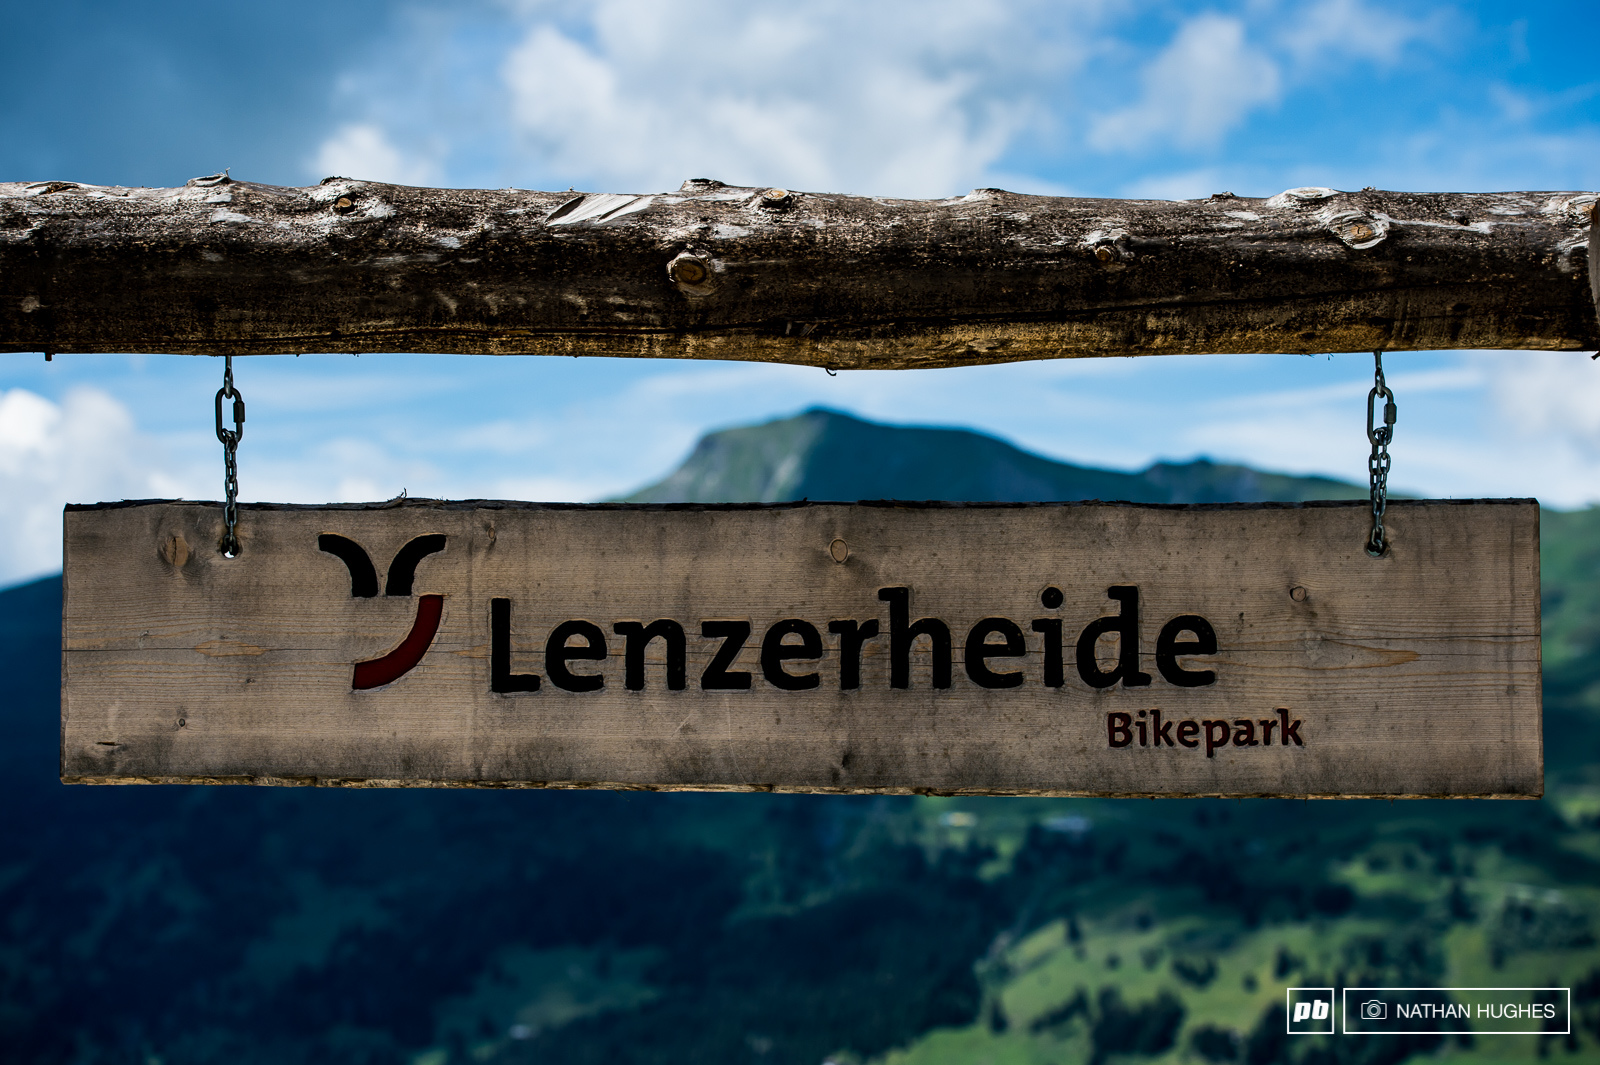 Welcome to Lenzerheide where things go downhill fast.